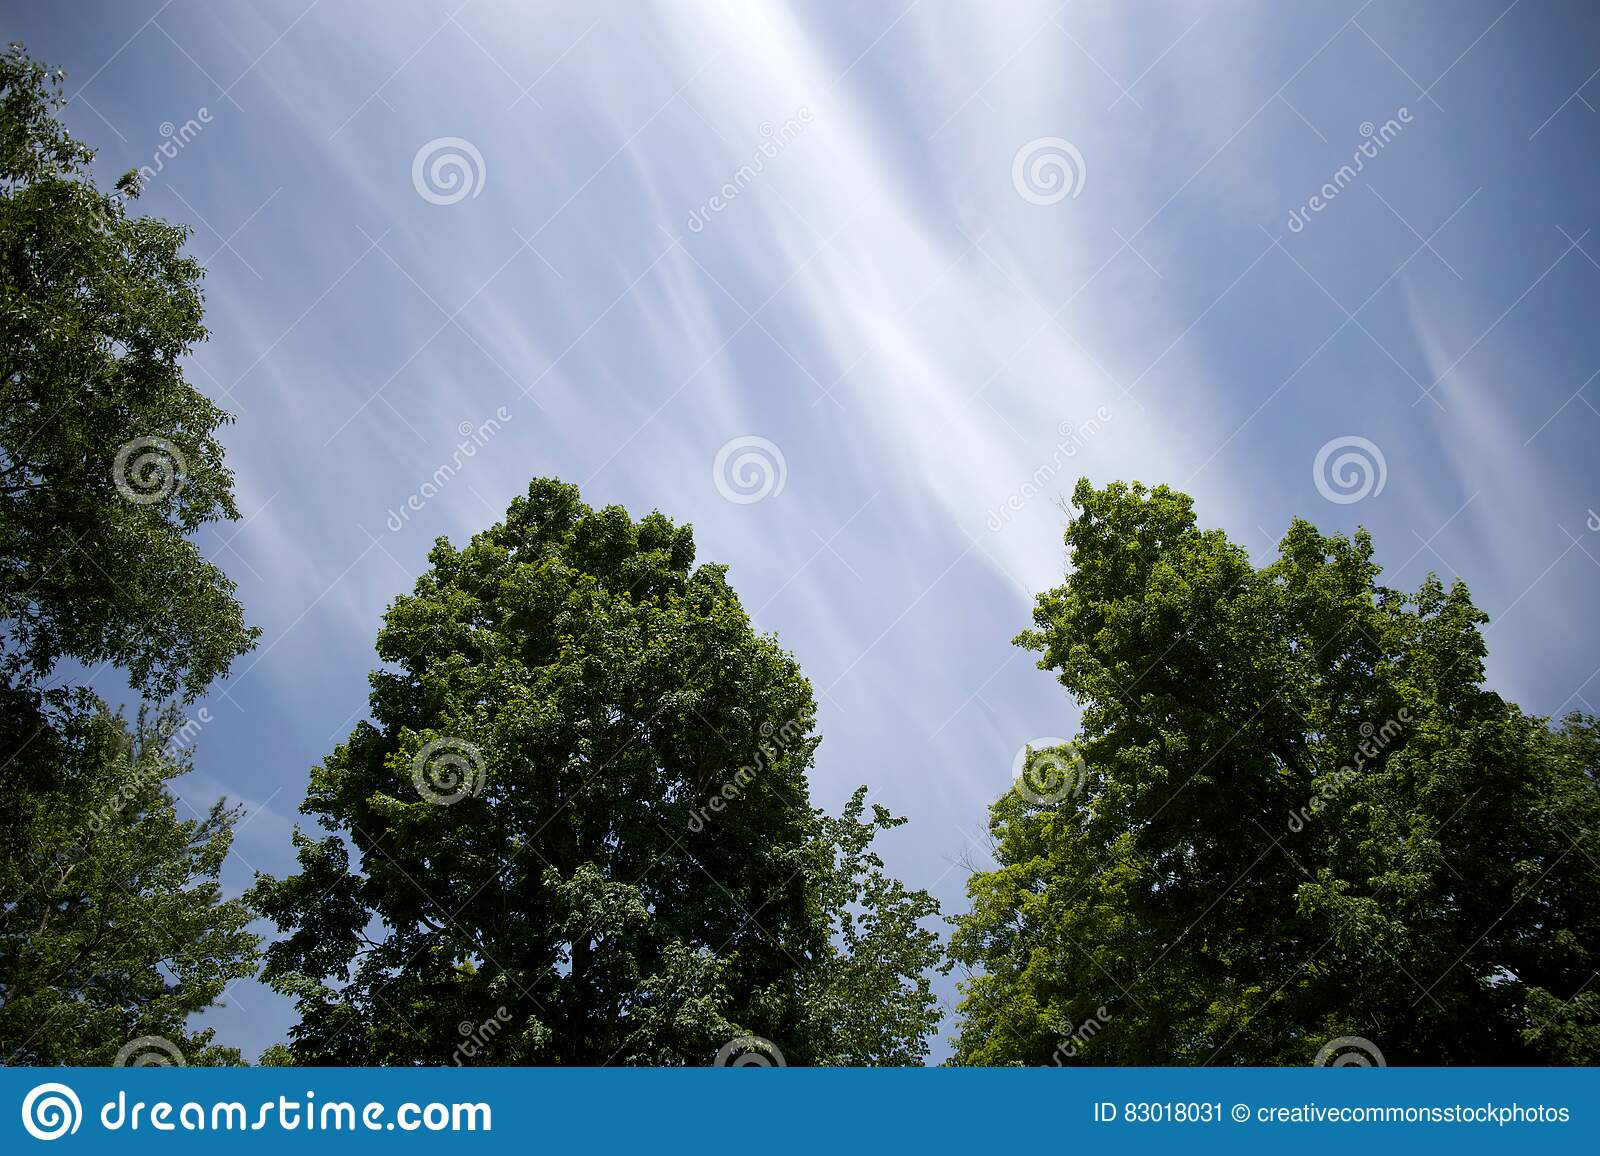 Download Blue skies over tree tops stock image. Image of green - 83018031